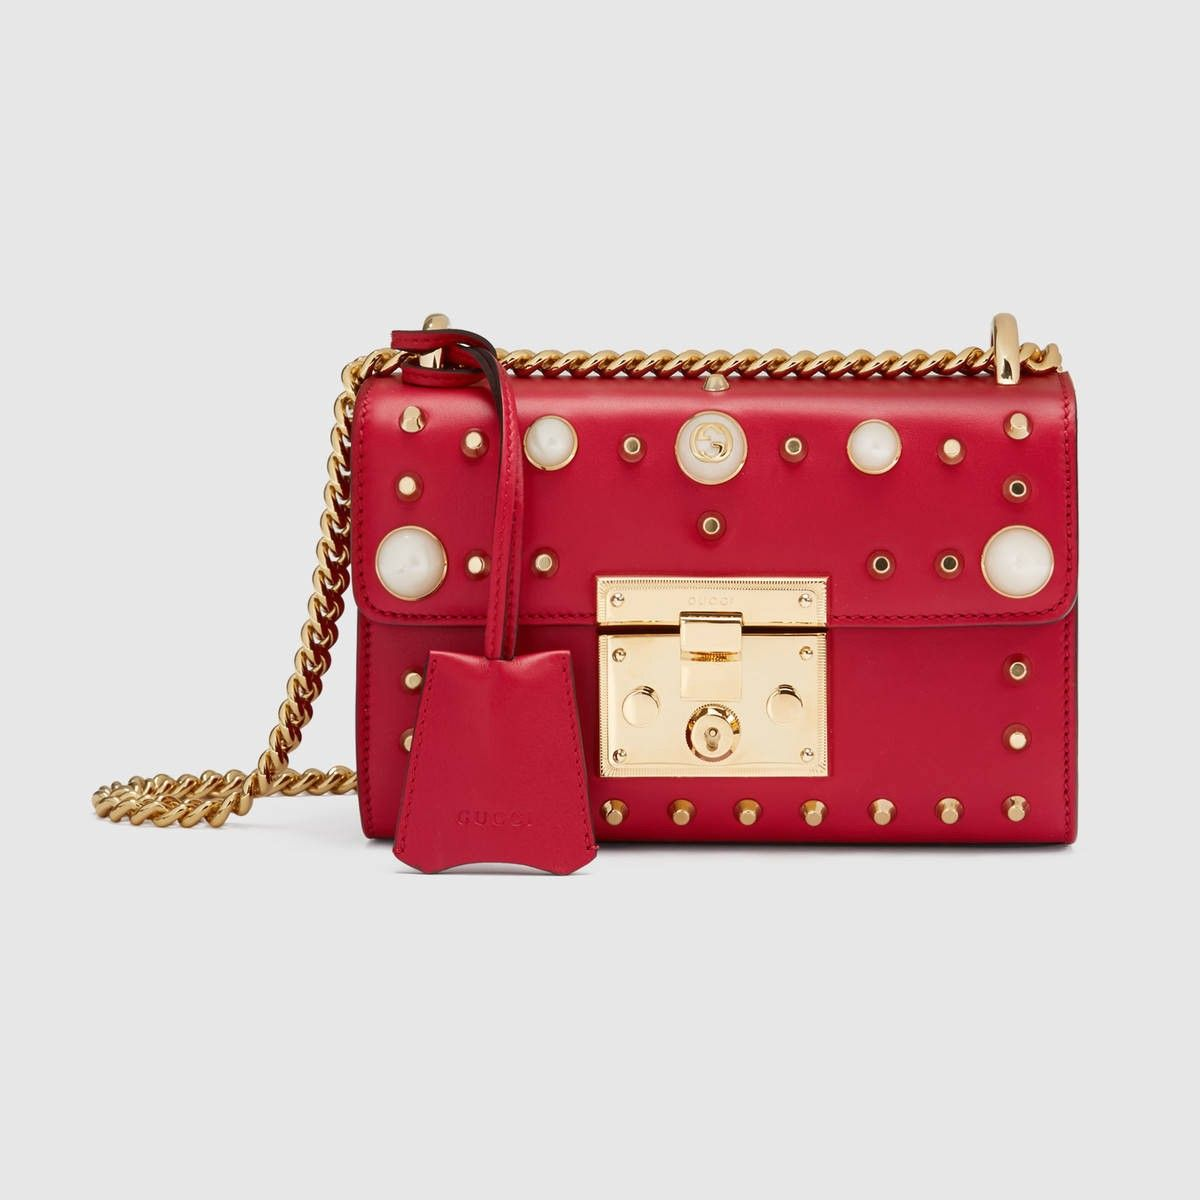 965723a1e00c GUCCI Padlock Studded Leather Shoulder Bag - Hibiscus Red Leather. #gucci # bags #shoulder bags #hand bags #leather #lace #